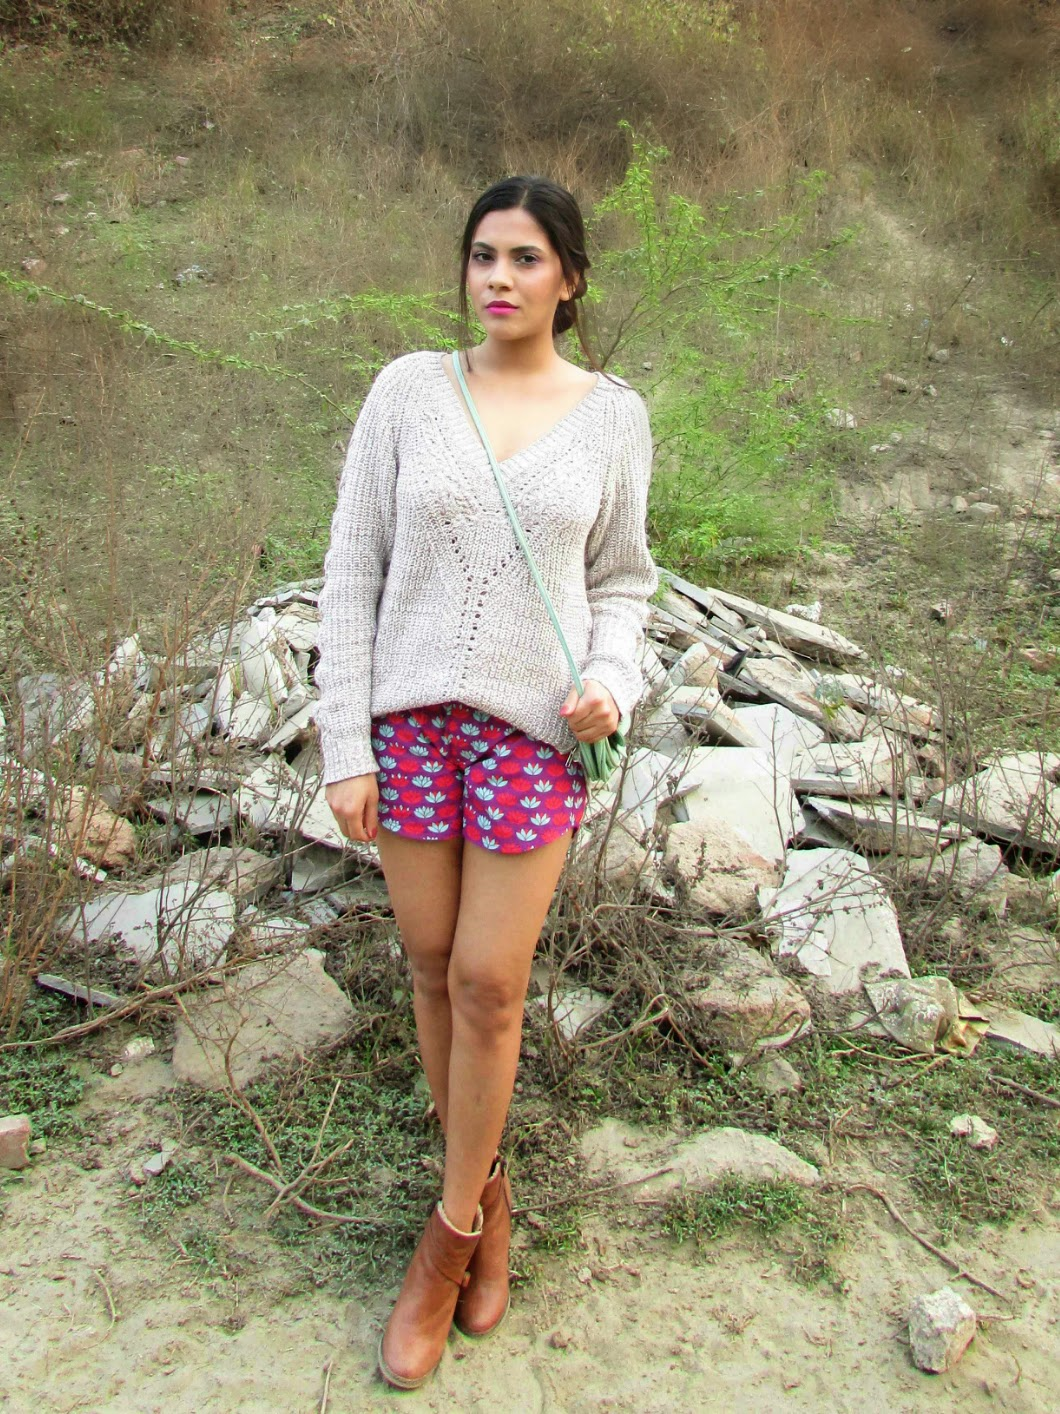 how to style shorts for winter, indiacircus, shorts, lotus shorts, cotton printed shorts, cheap shorts india online, lilac makeup, indiacircus review, ankle boots, colorful shorts, comfortable shorts, modern indian print, fusion shorts, indian fashion blog, Statement necklace, necklace, statement necklaces, big necklace, heavy necklaces , gold necklace, silver necklace, silver statement necklace, gold statement necklace, studded statement necklace , studded necklace, stone studded necklace, stone necklace, stove studded statement necklace, stone statement necklace, stone studded gold statement necklace, stone studded silver statement necklace, black stone necklace, black stone studded statement necklace, black stone necklace, black stone statement necklace, neon statement necklace, neon stone statement necklace, black and silver necklace, black and gold necklace, blank and silver statement necklace, black and gold statement necklace, silver jewellery, gold jewellery, stove jewellery, stone studded jewellery, imitation jewellery, artificial jewellery, junk jewellery, cheap jewellery ,indiacircus Statement necklace, indiacircus necklace, indiacircus statement necklaces,indiacircus big necklace, indiacircus heavy necklaces , indiacircus gold necklace, indiacircus silver necklace, indiacircus silver statement necklace,indiacircus gold statement necklace, indiacircus studded statement necklace , indiacircus studded necklace, indiacircus stone studded necklace, indiacircus stone necklace, indiacircus stove studded statement necklace, indiacircus stone statement necklace, indiacircus stone studded gold statement necklace, indiacircus stone studded silver statement necklace, indiacircus black stone necklace, indiacircus black stone studded statement necklace, indiacircus black stone necklace, indiacircus black stone statement necklace, indiacircus neon statement necklace, indiacircus neon stone statement necklace, indiacircus black and silver necklace, indiacircus black and